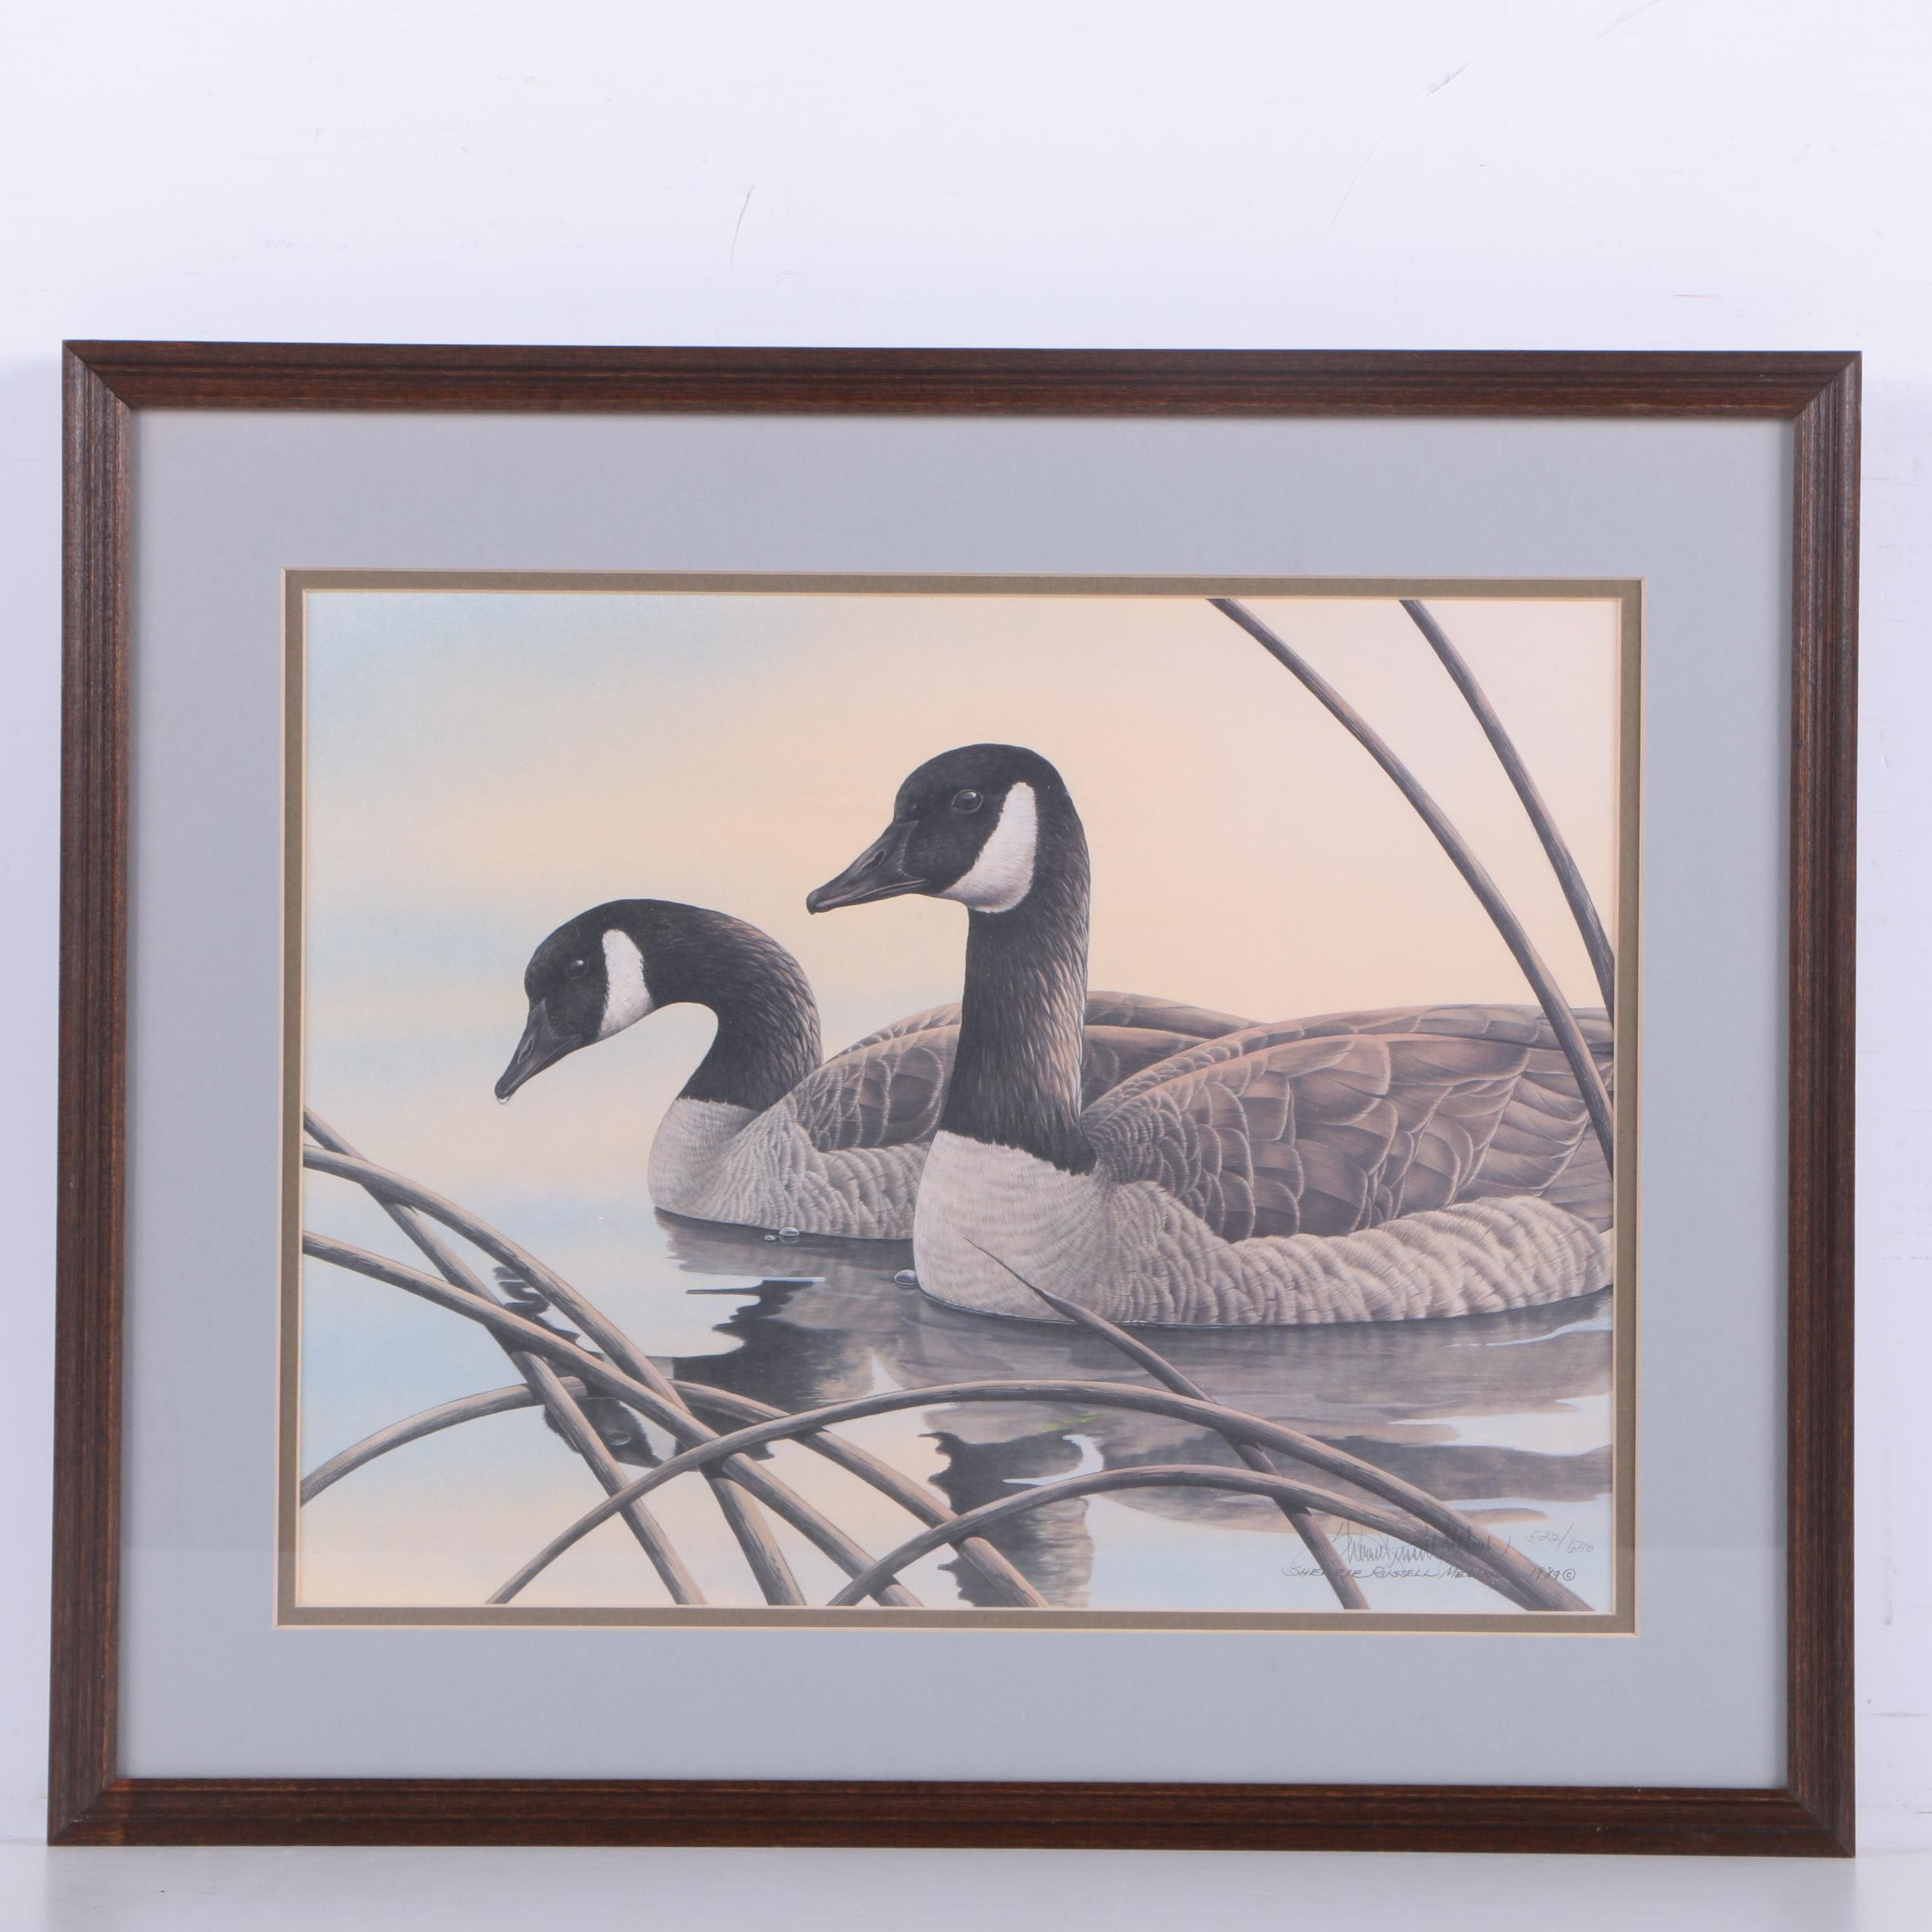 Sherrie Russell Meline Limited Edition Offset Lithograph of Canada Geese